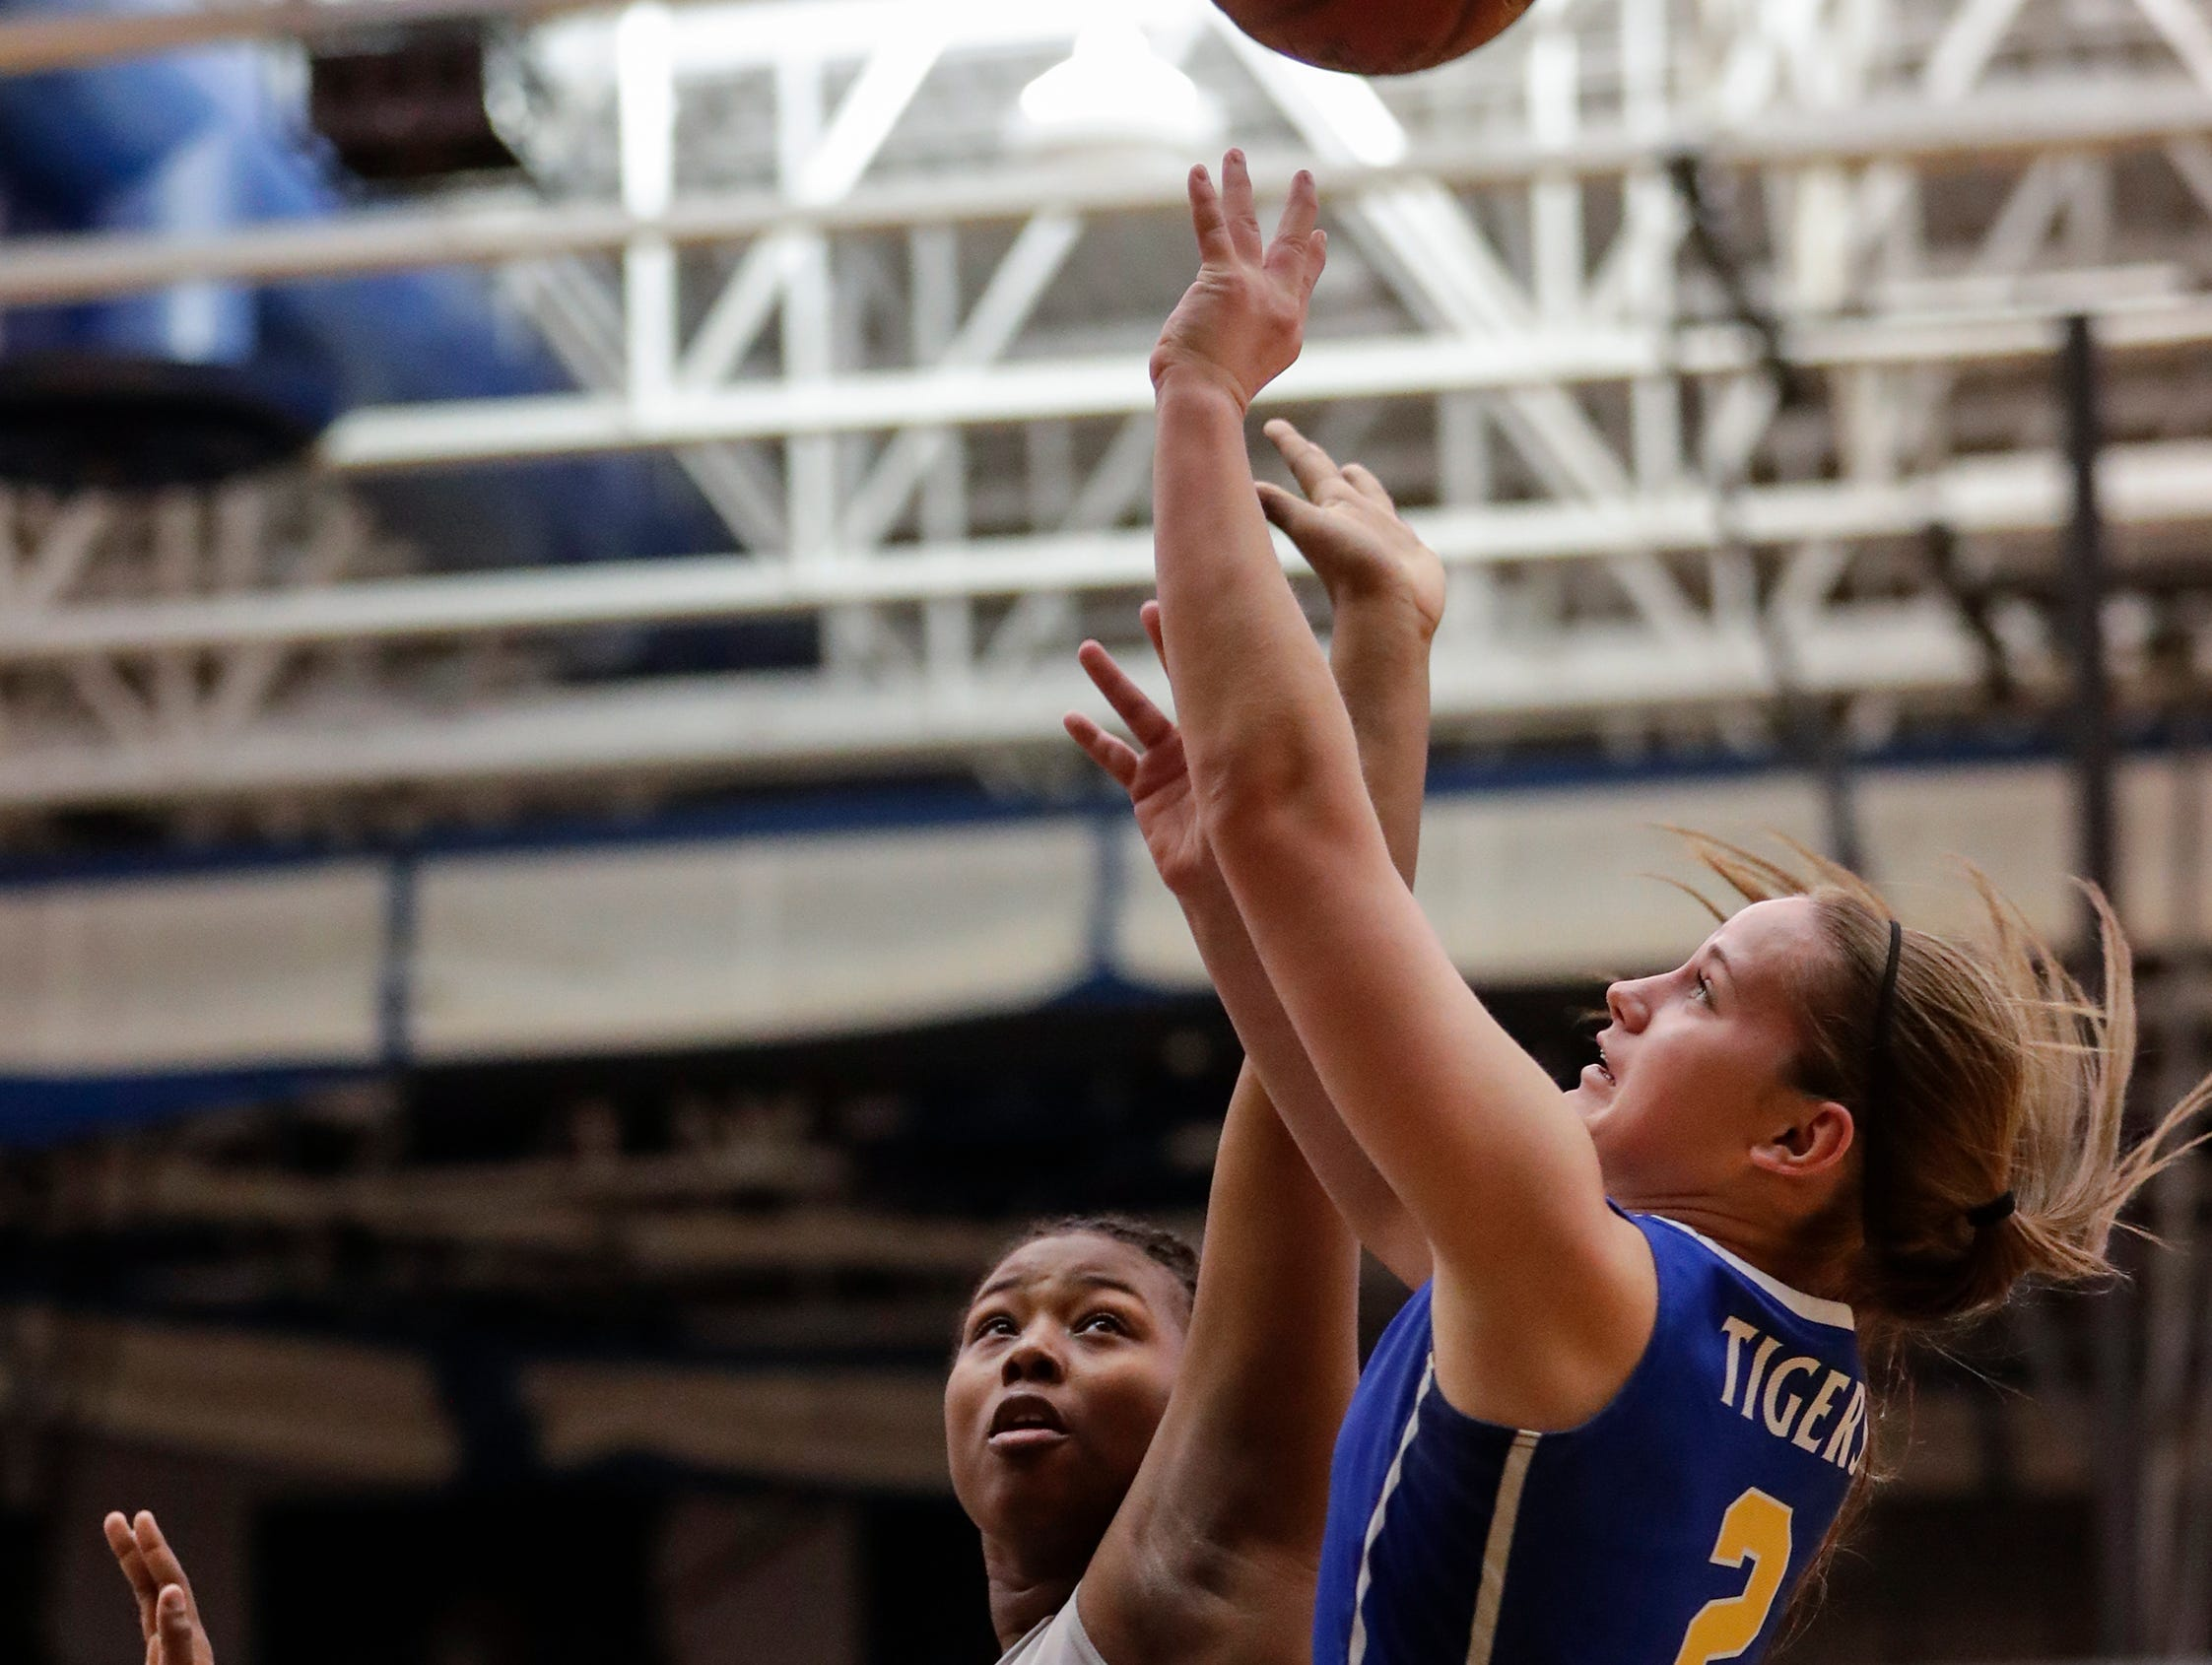 Howards Grove's Zayla Mueller (2) puts up a shot against Milwaukee Academy of Science during a WIAA Division 4 sectional championship game at Sheboygan North High School Saturday, March 2, 2019, in Sheboygan, Wis. Joshua Clark/USA TODAY NETWORK-Wisconsin